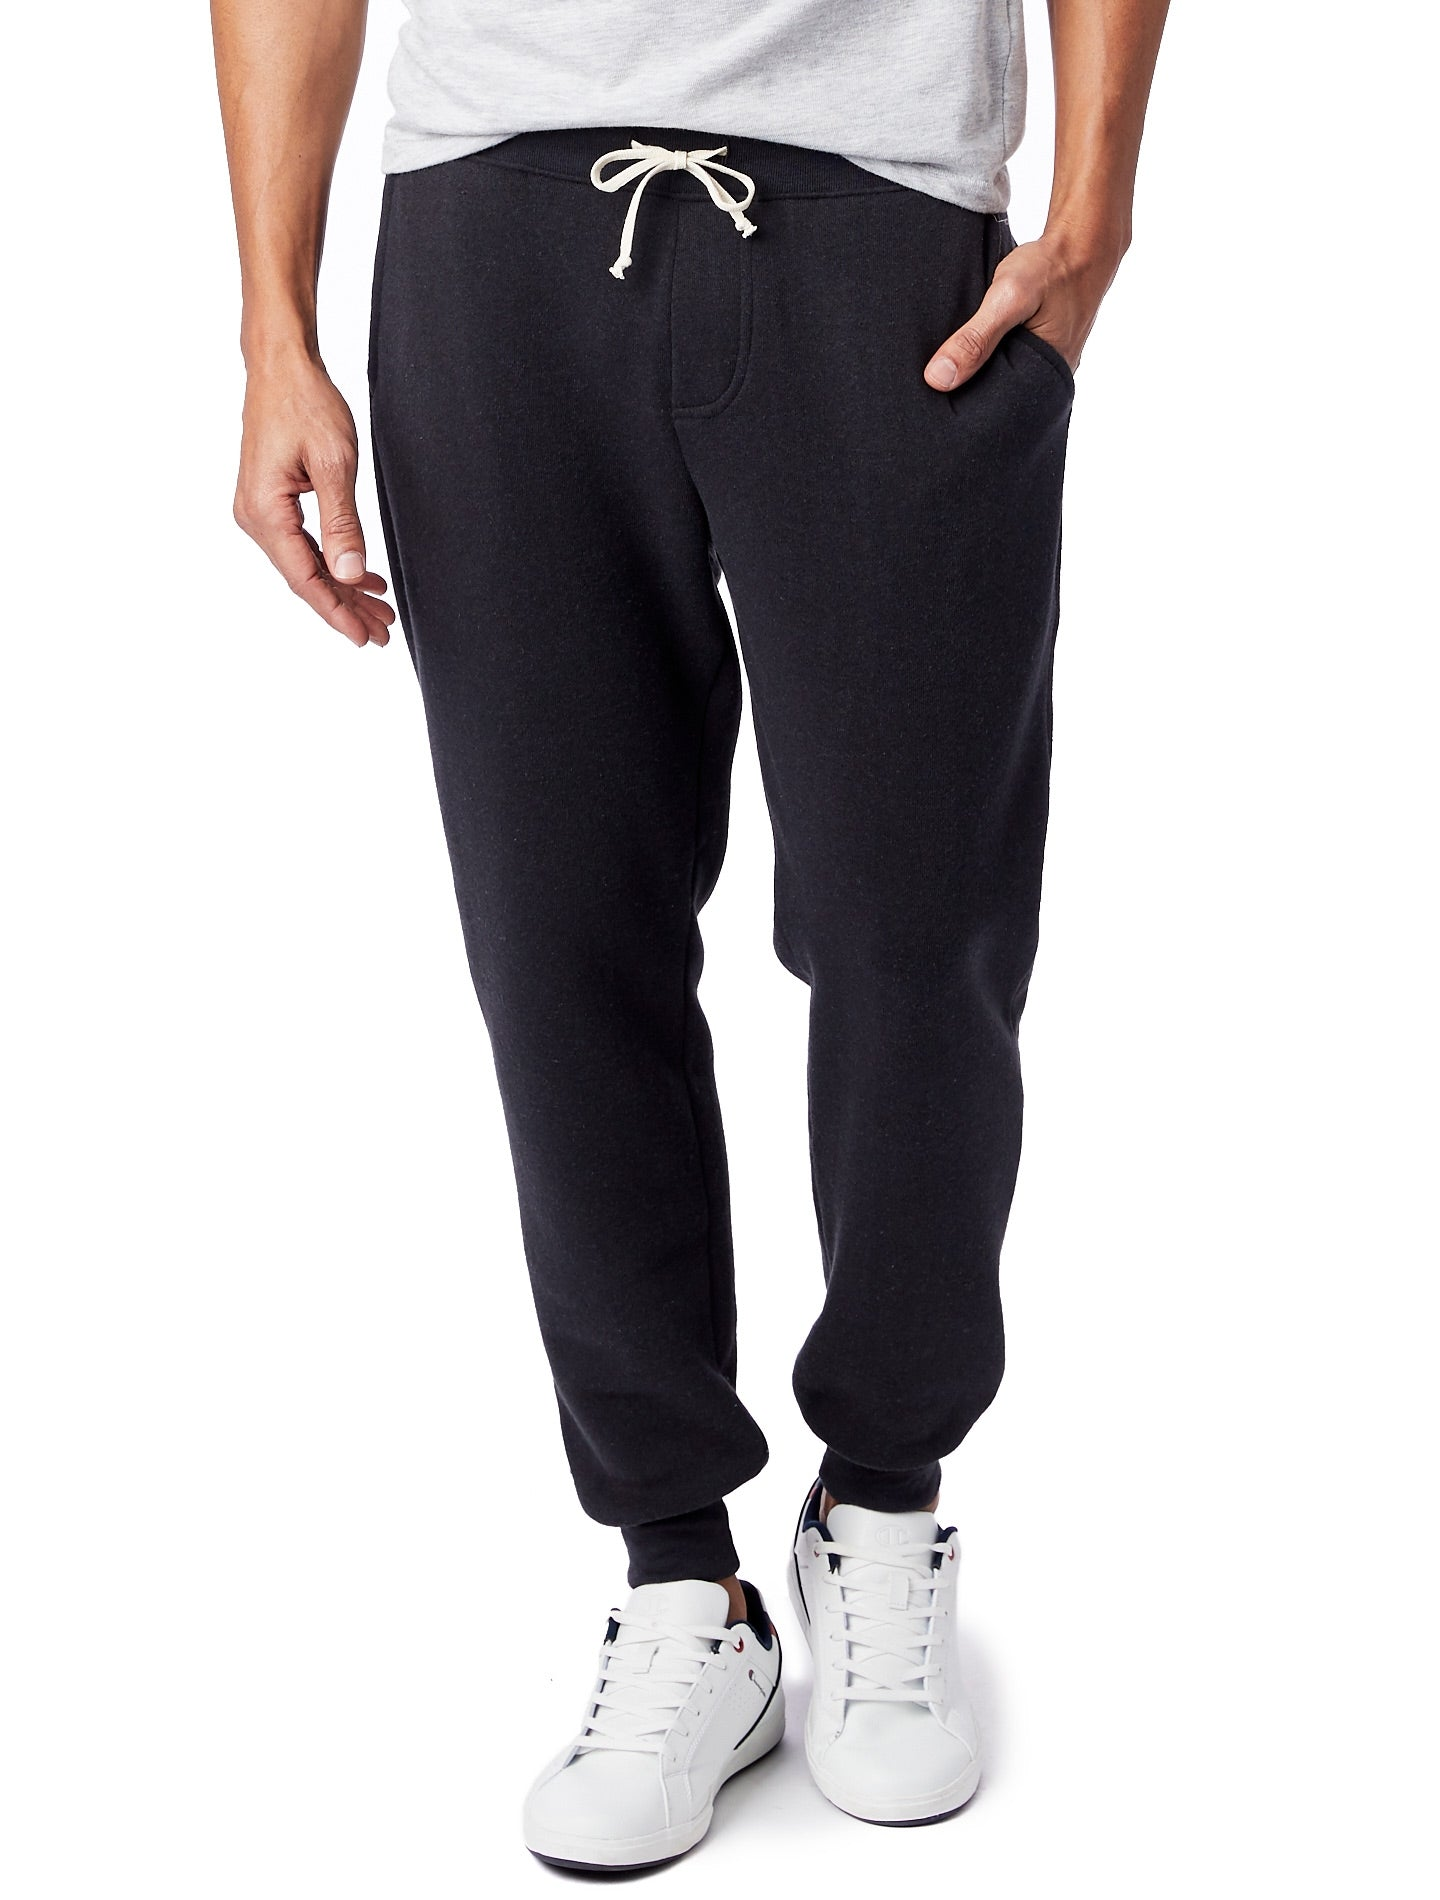 Men's Tri-Blend Sweatpants